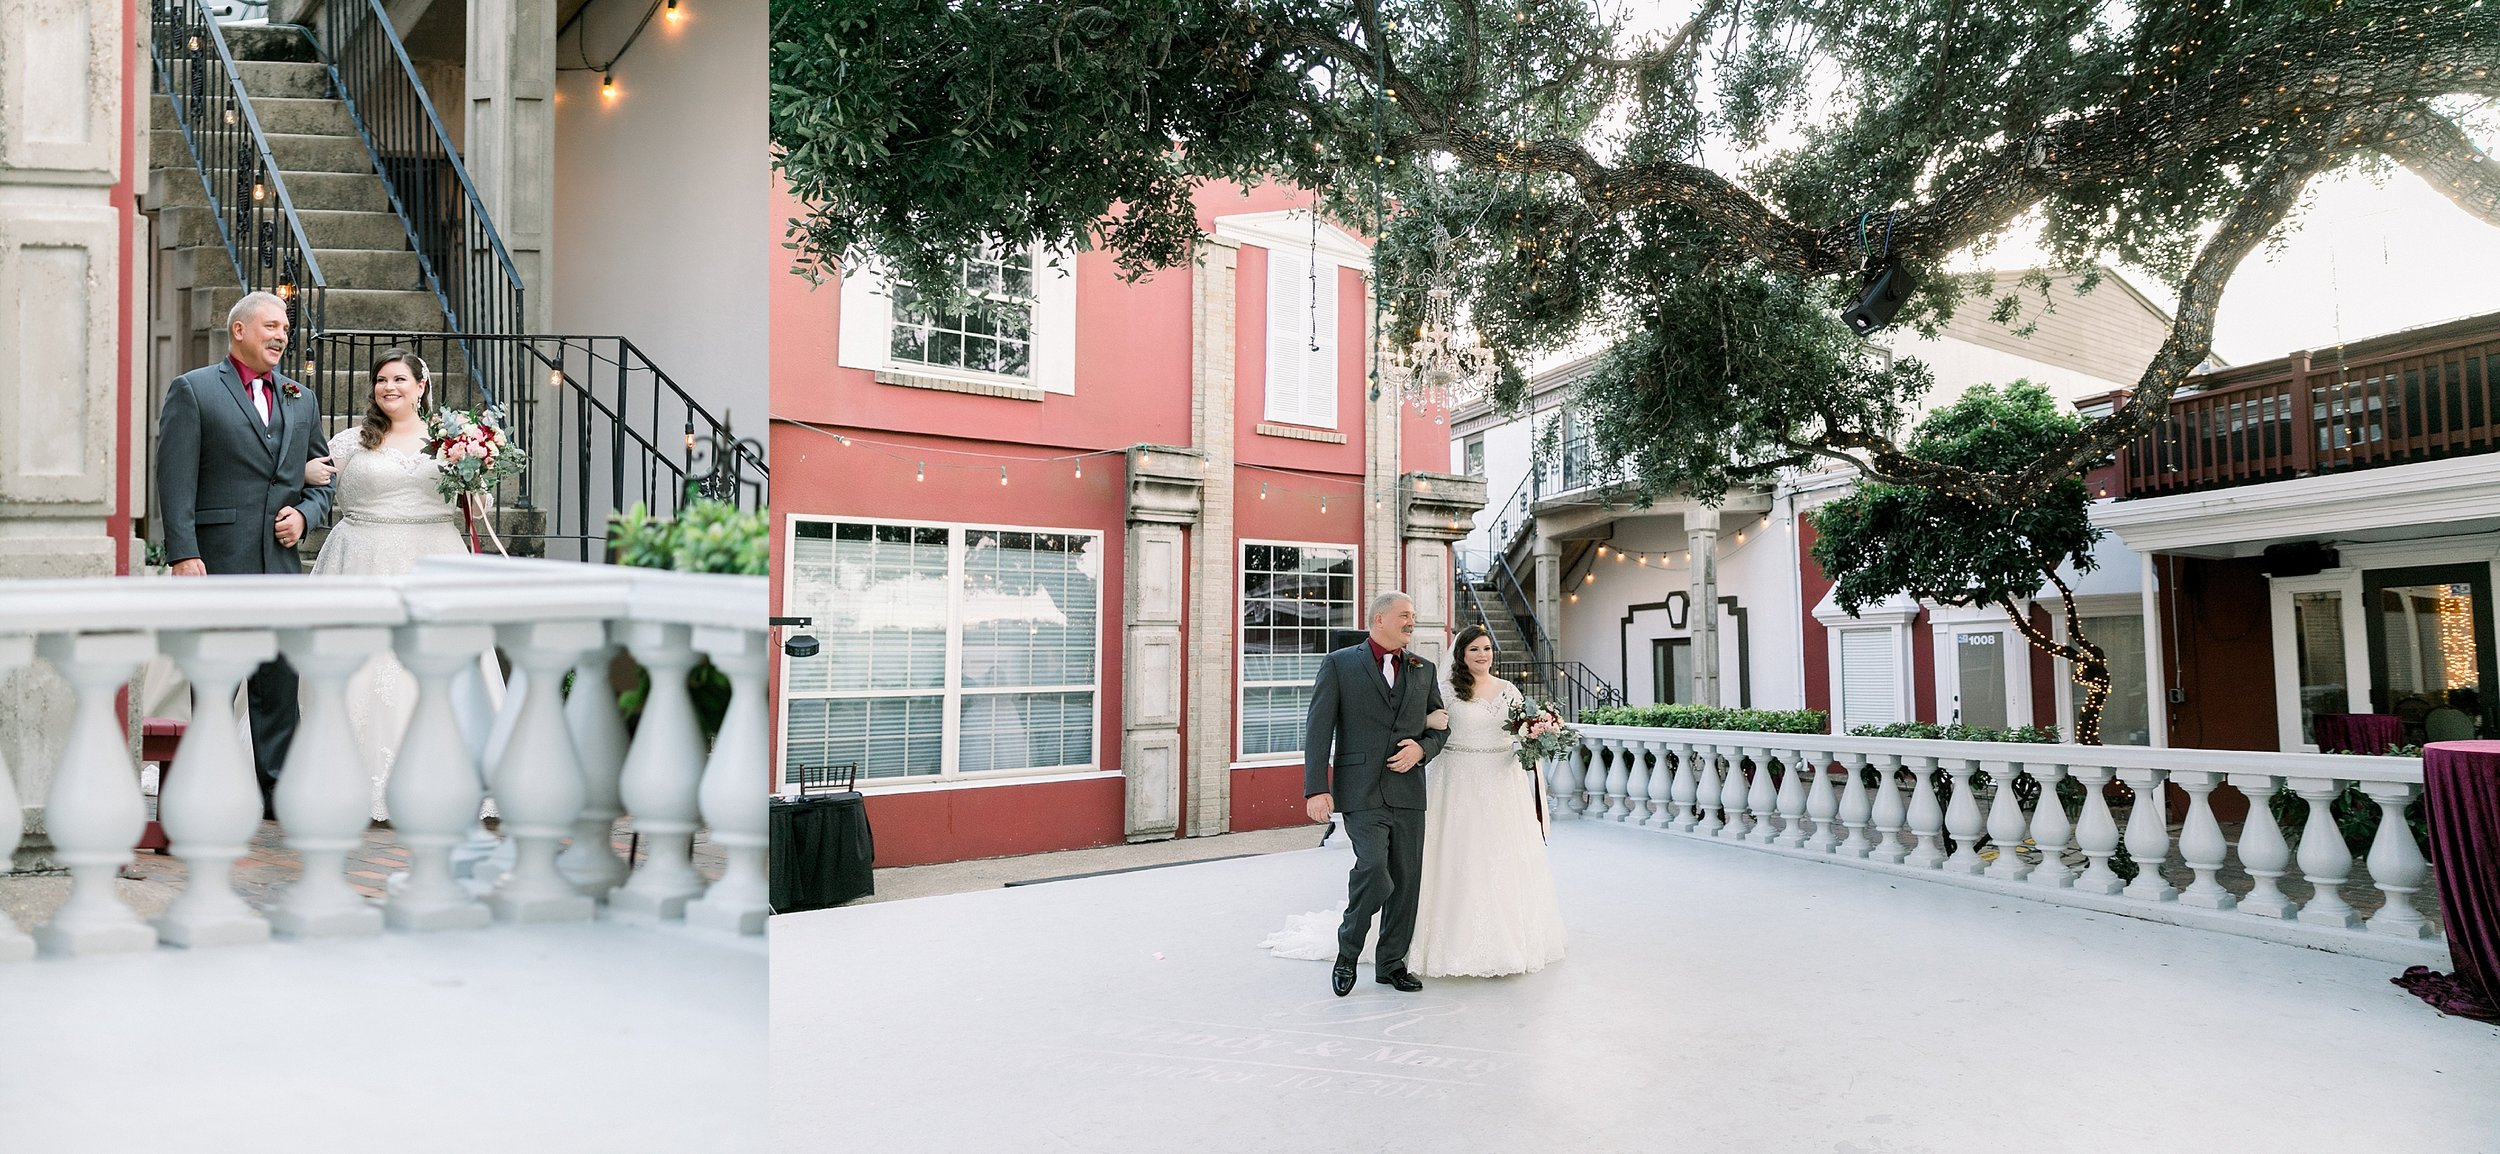 gaslight-at-courtyard-square-corpus-christi-wedding-omni-hotel-fall-winter-wedding-texas-wedding-photographer-lauren-pinson-0060.jpg